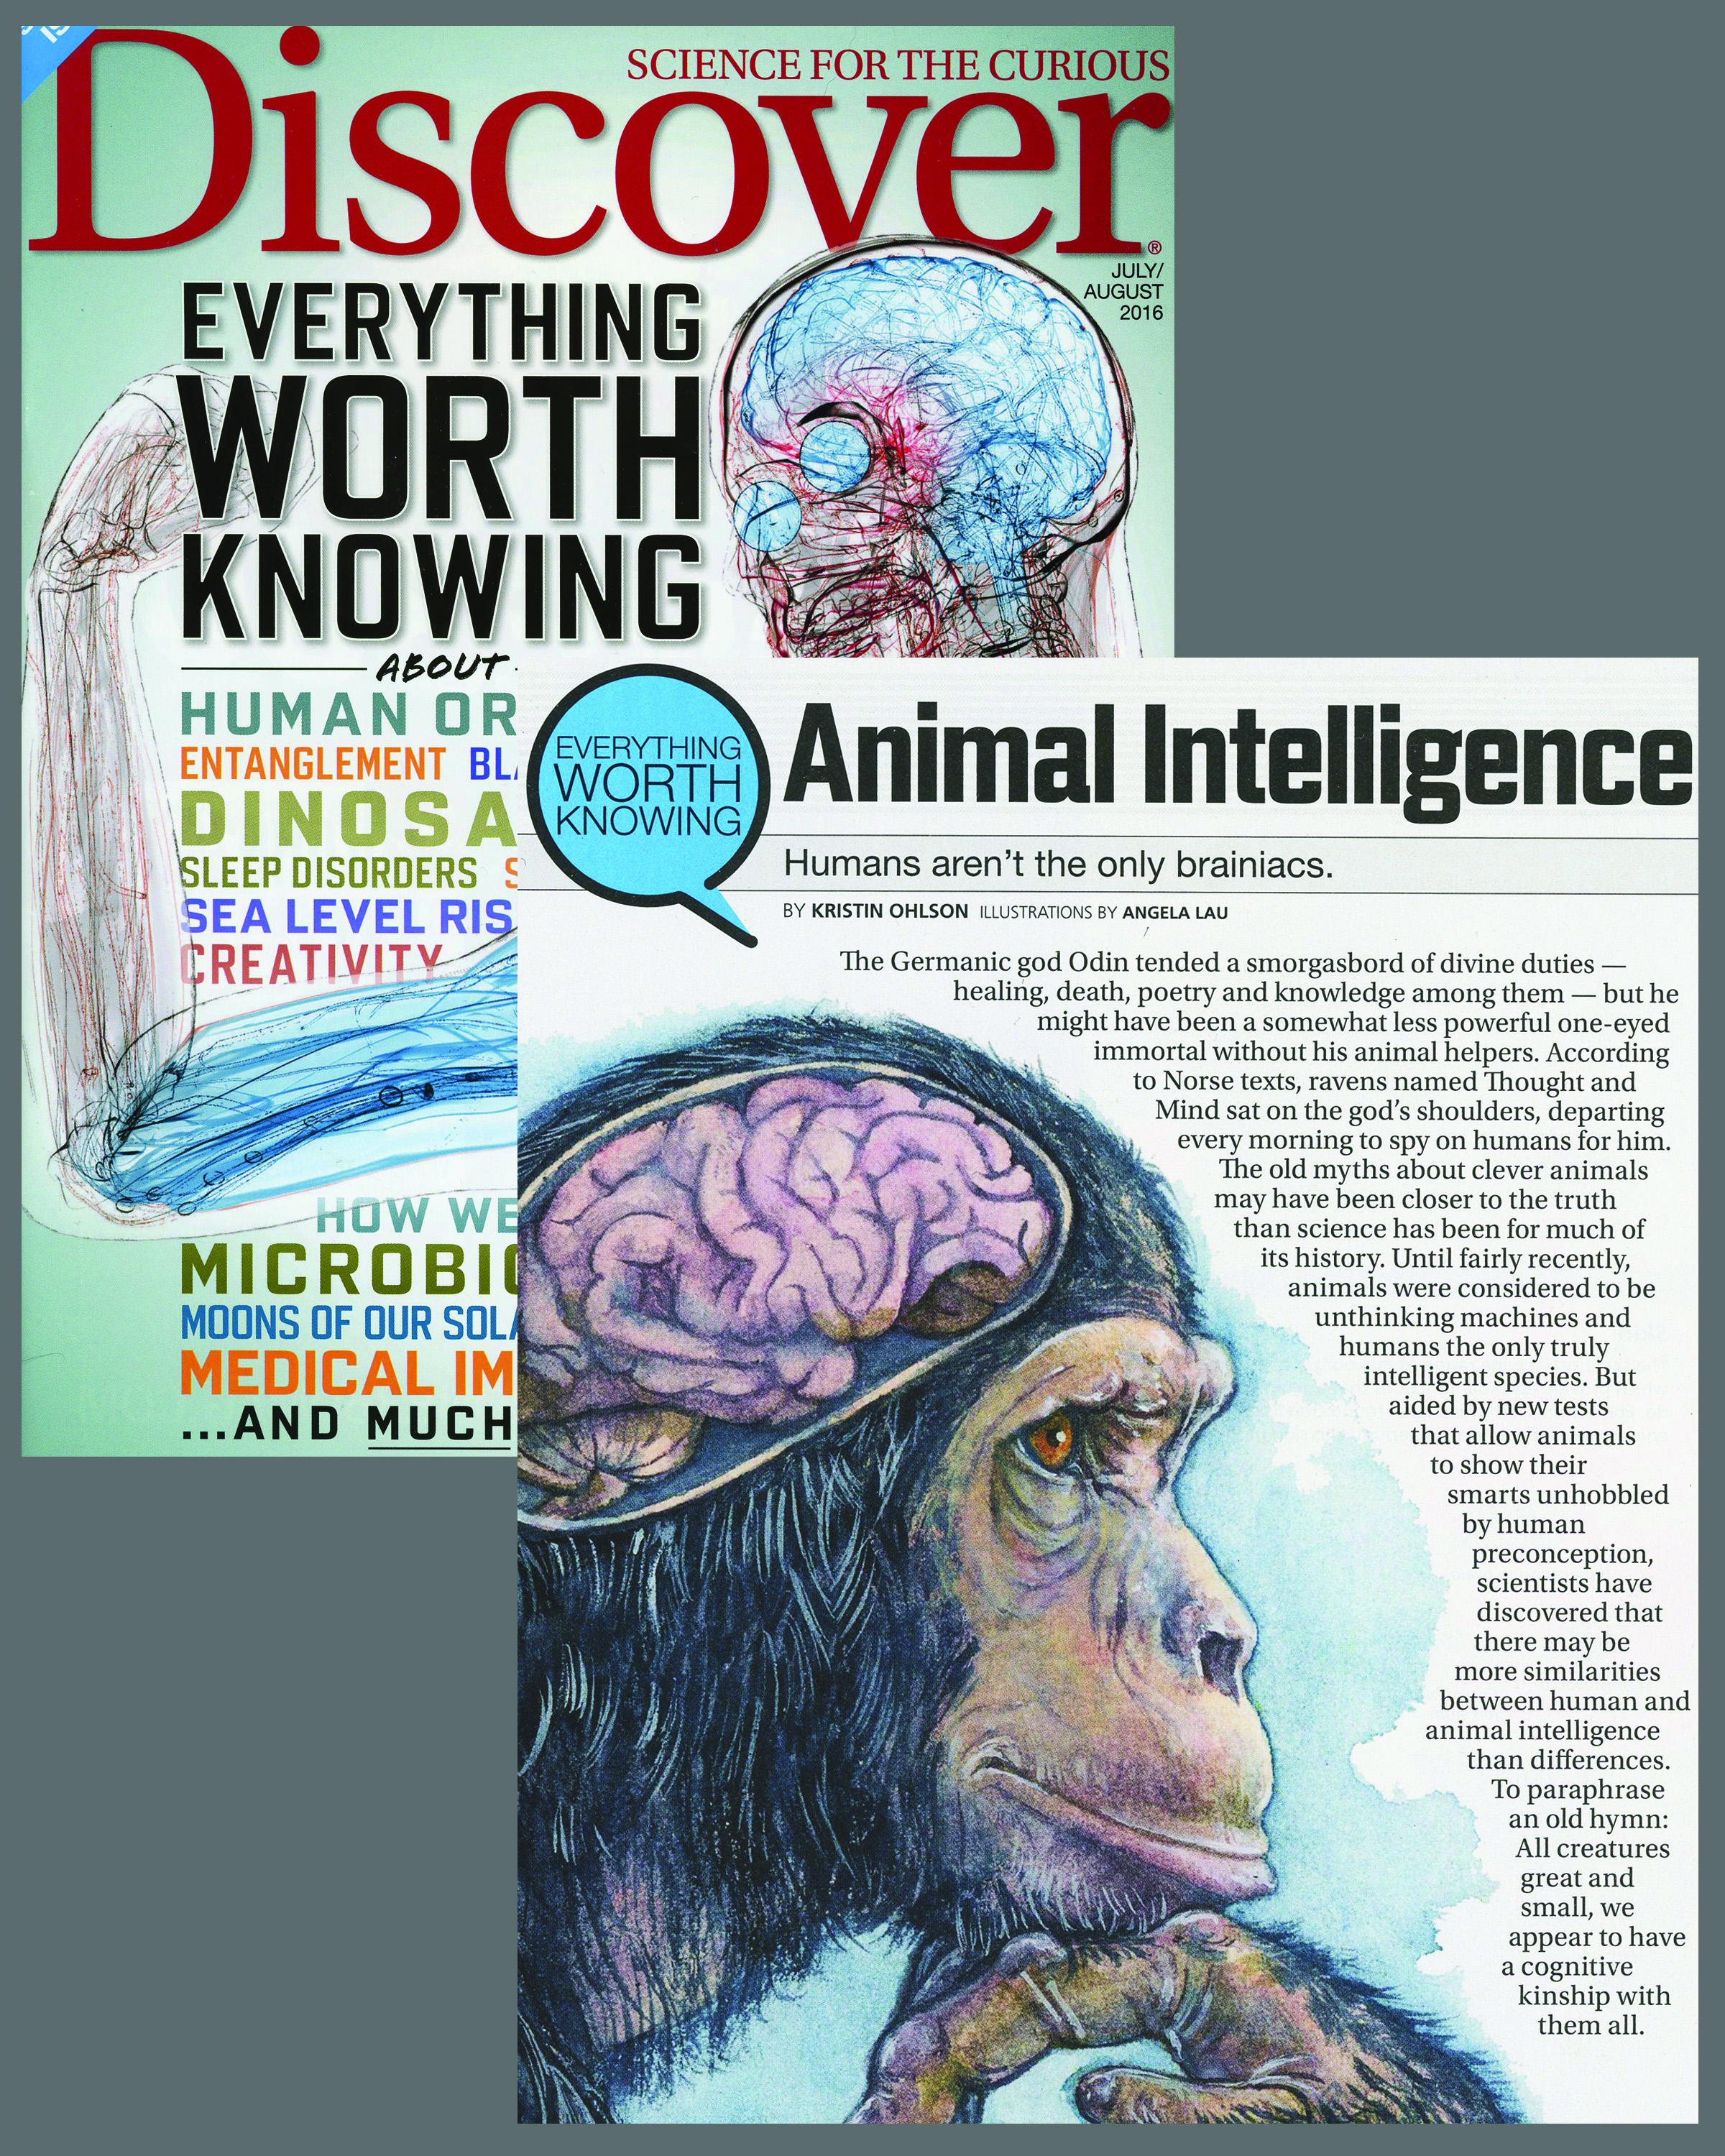 "Everything Worth Knowing About ... Animal Intelligence - "" Humans aren't the only brainiacs.""  By  Kristin Ohlson   Published in  Discover Magazine  for July/August 2016 issue, page 66-69.  Online Article  here   AD Alison Mackey  Article on different types of intelligence in animals"